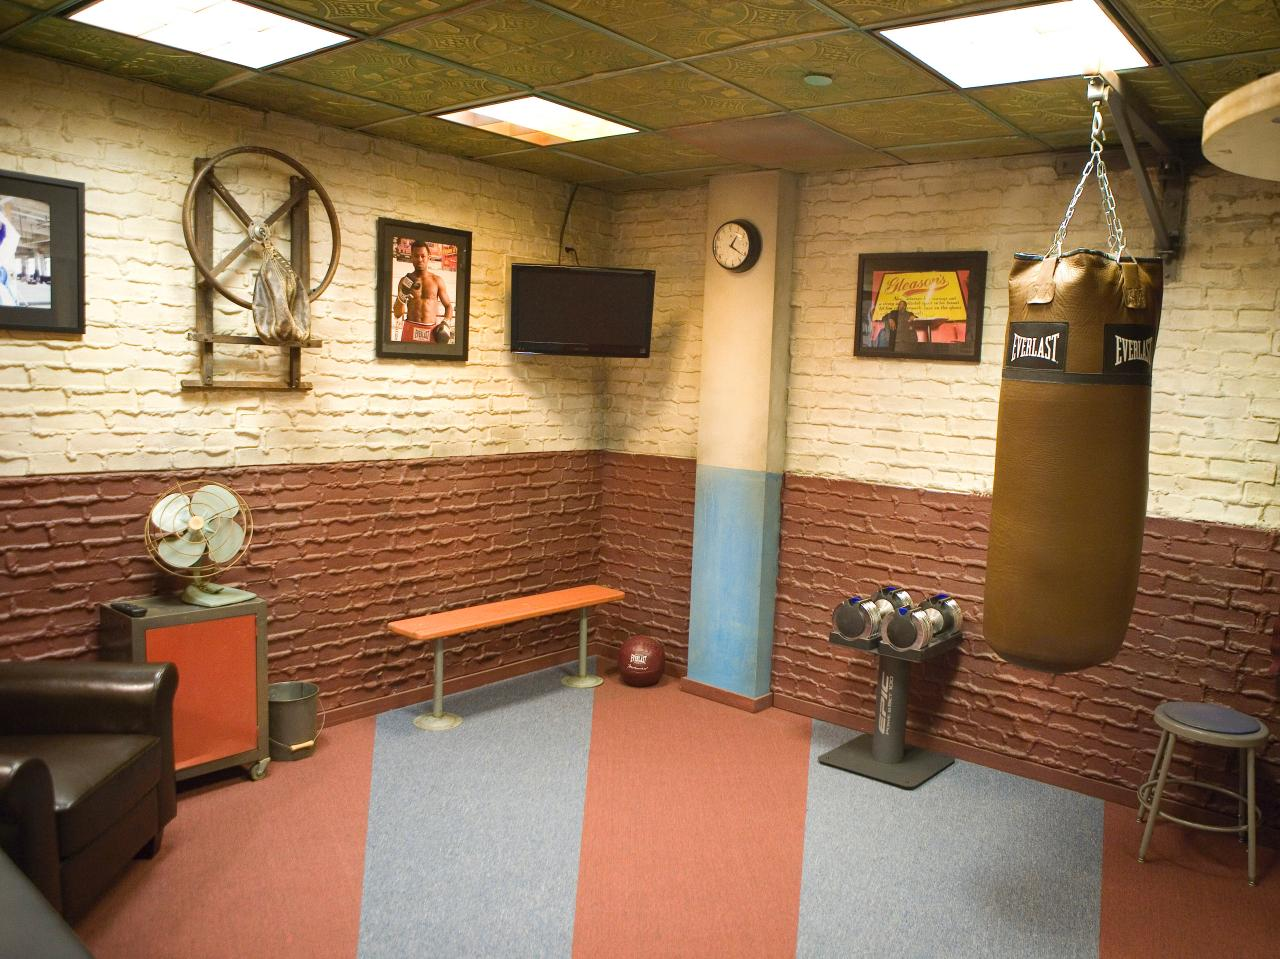 Antonio s knock out gym makeover decorating and design